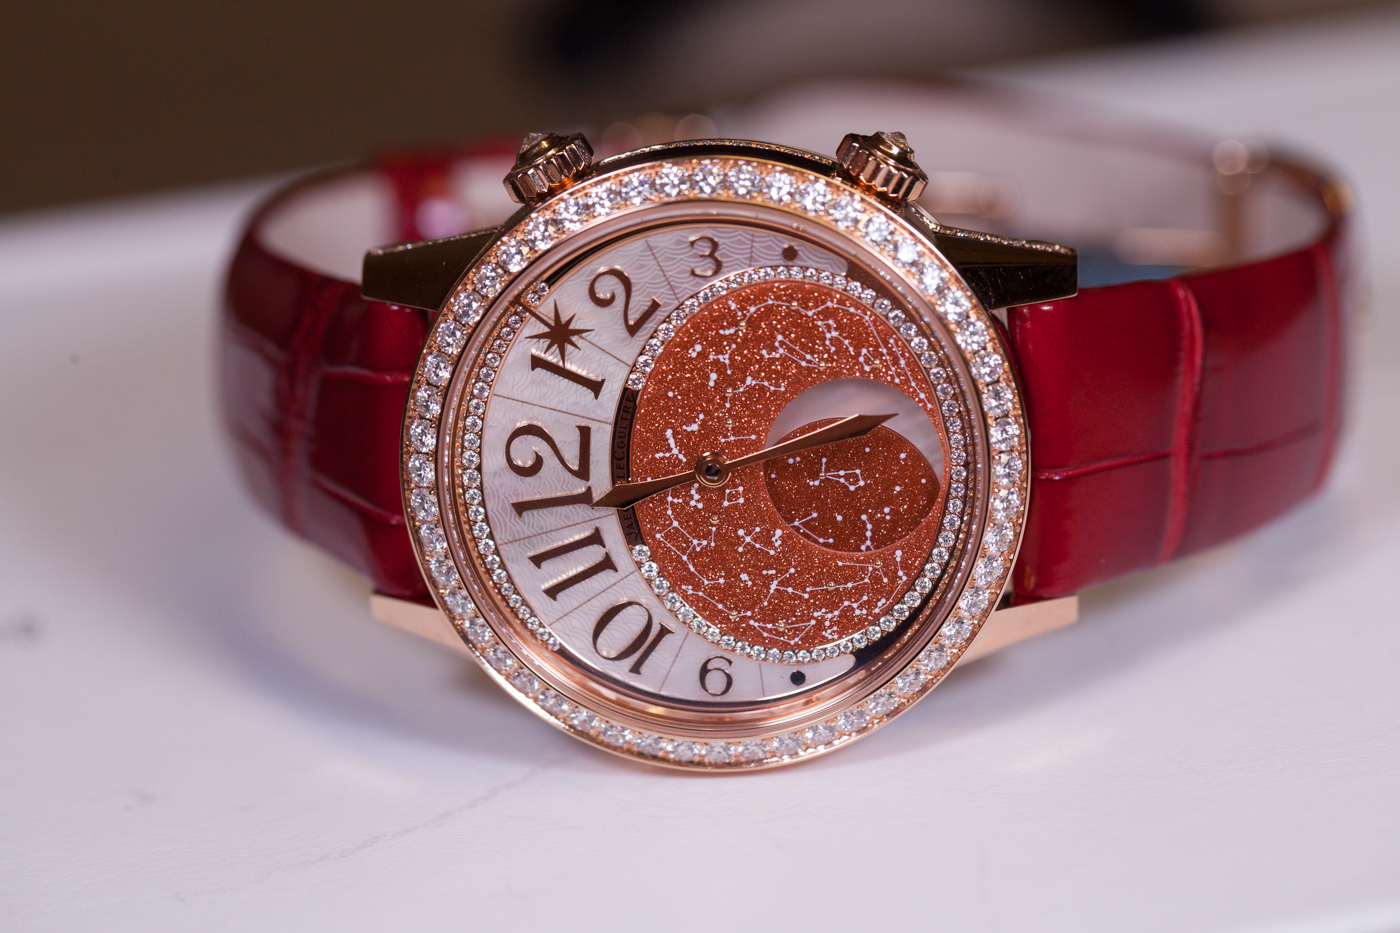 This luxury fake watch is charming for ladies.